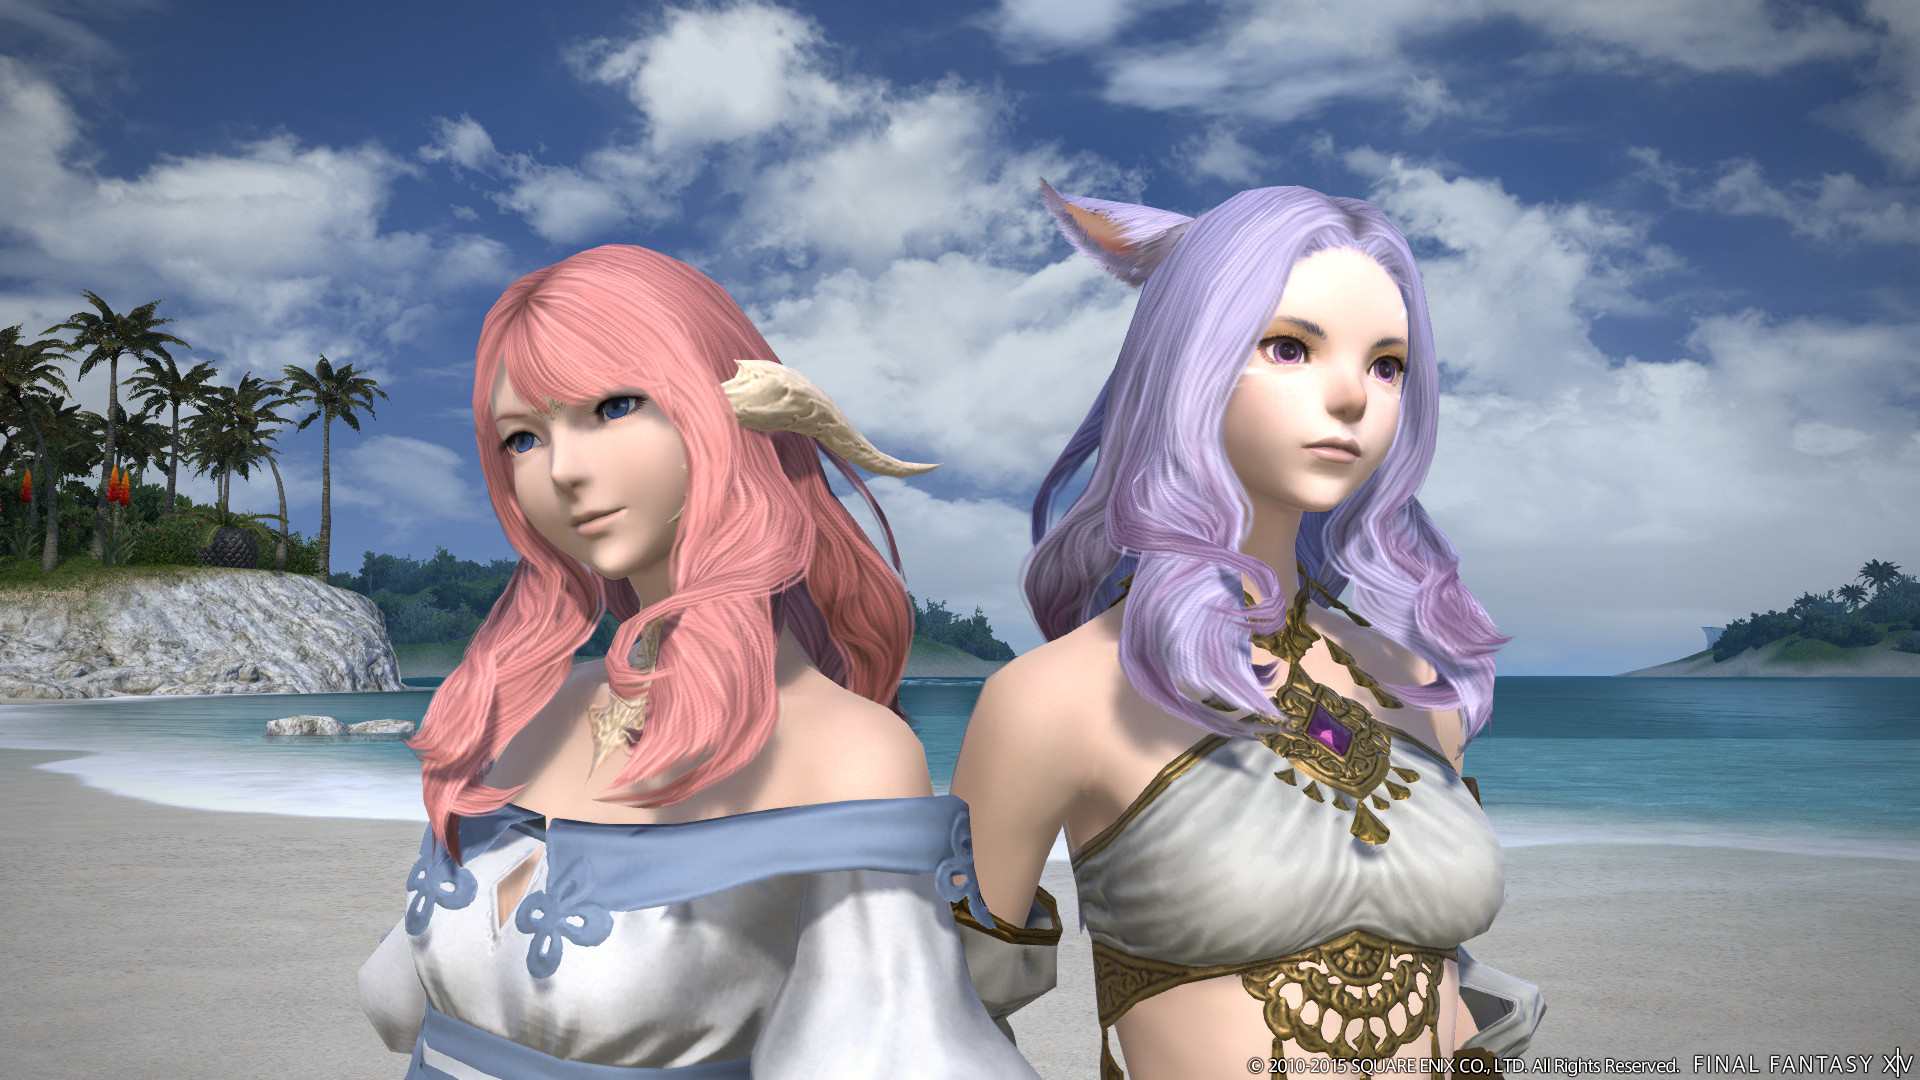 Best ideas about Ffxiv Female Hairstyles . Save or Pin Final Fantasy XIV Team Show Their Gratitude to Players by Now.